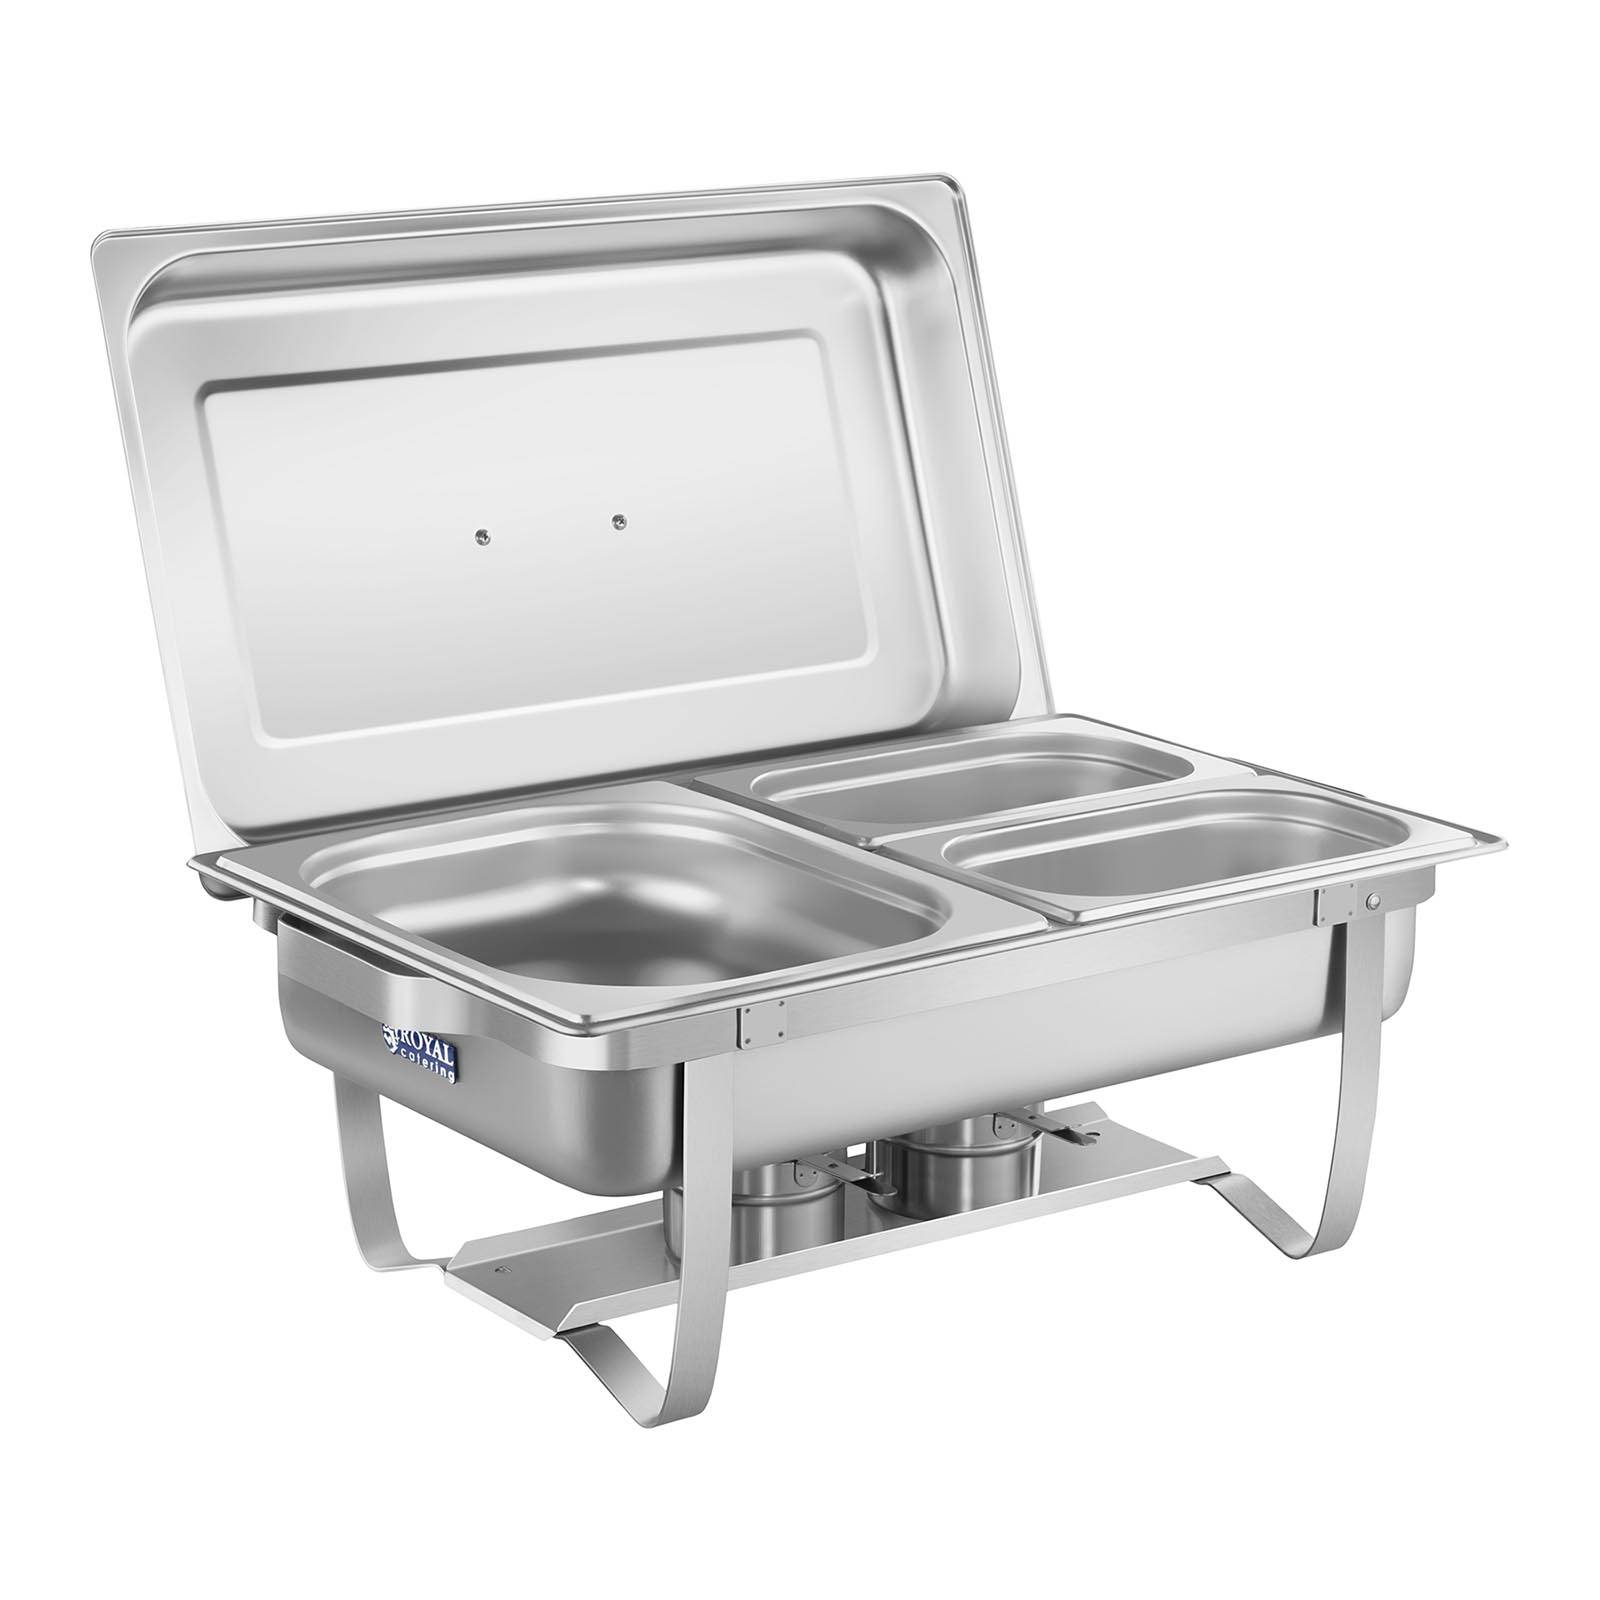 Royal Catering Chafing Dish - 53 cm - bacs GN inclus RCCD-1.3GN-1